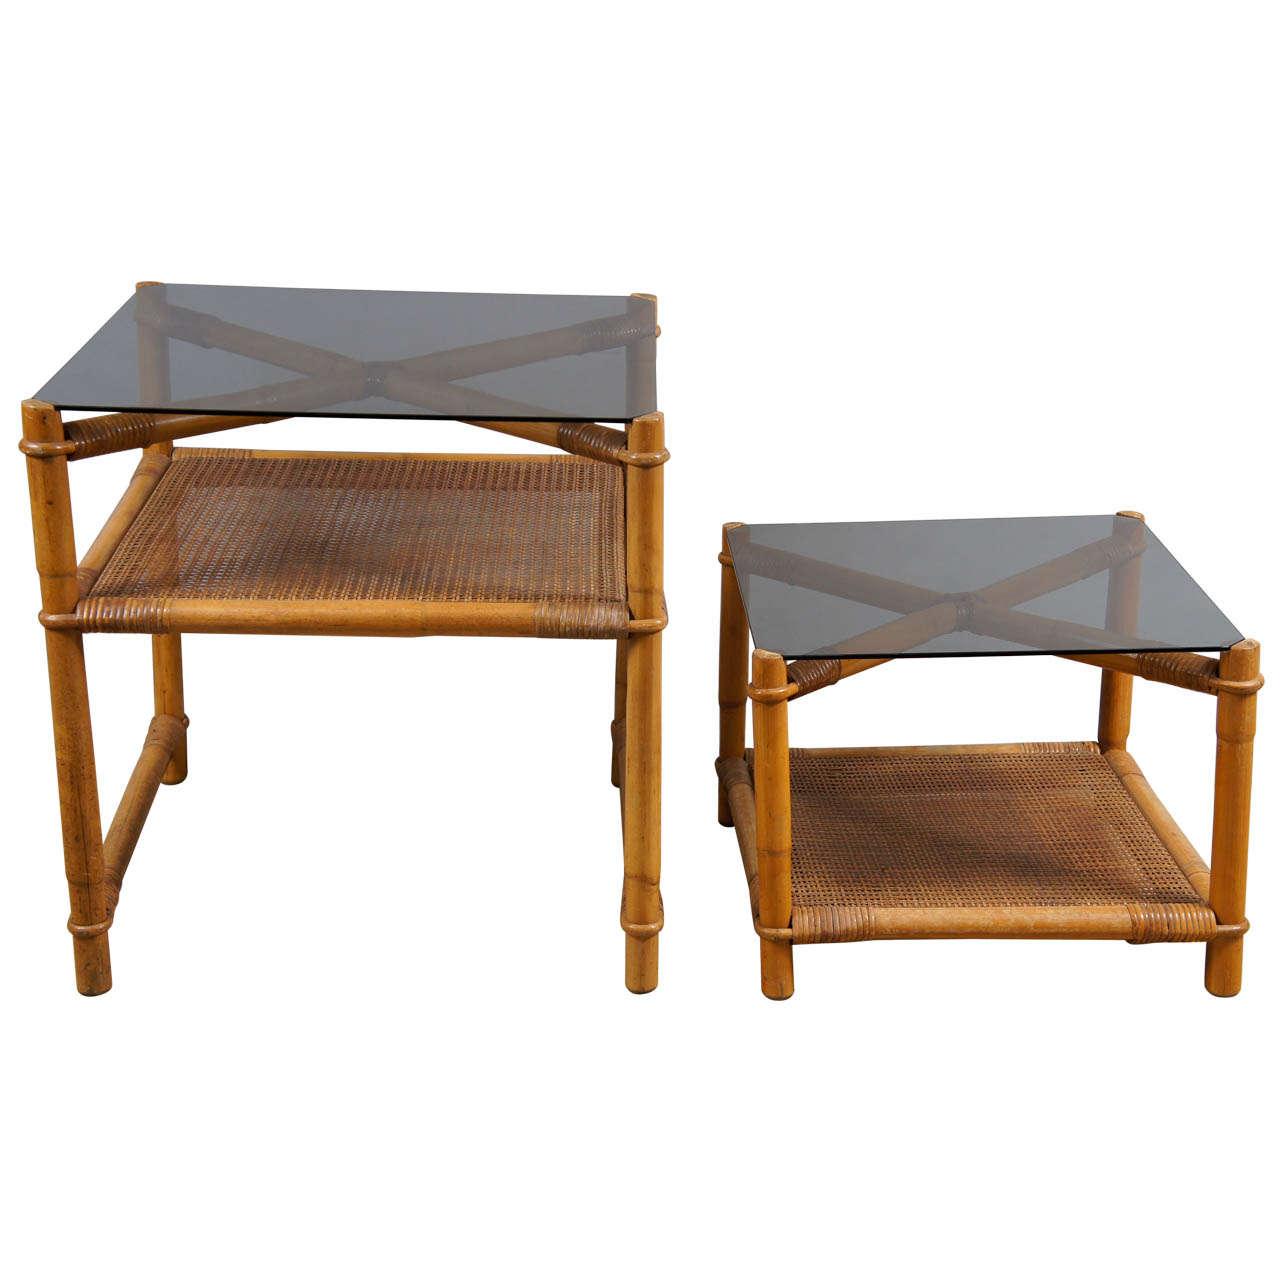 Faux bamboo and rattan end tables at 1stdibs for Bamboo side table